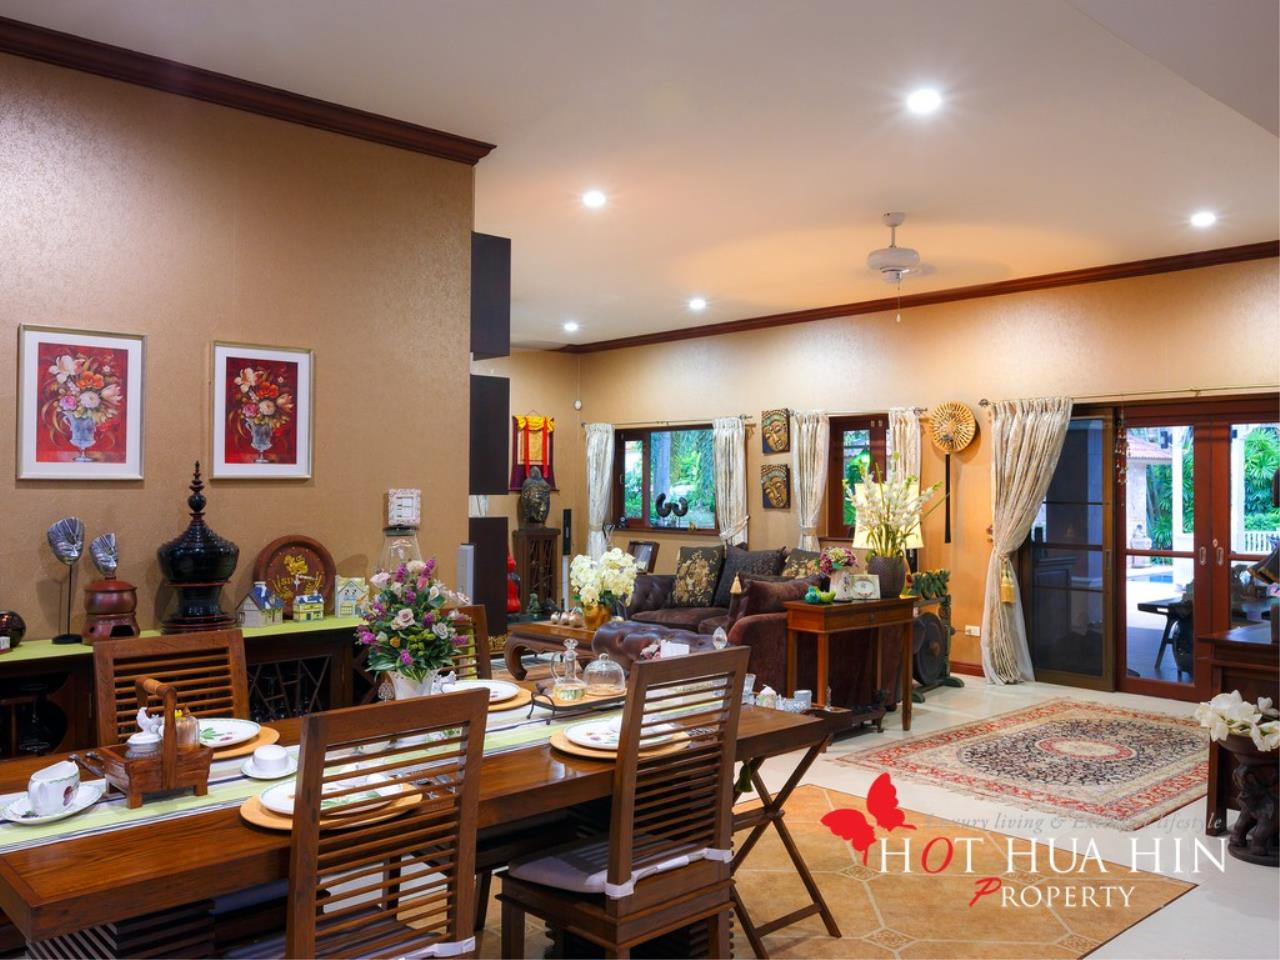 Hot Hua Hin Co. Ltd. Agency's Well Built Home With Stunning Gardens And Two Full Kitchens 9